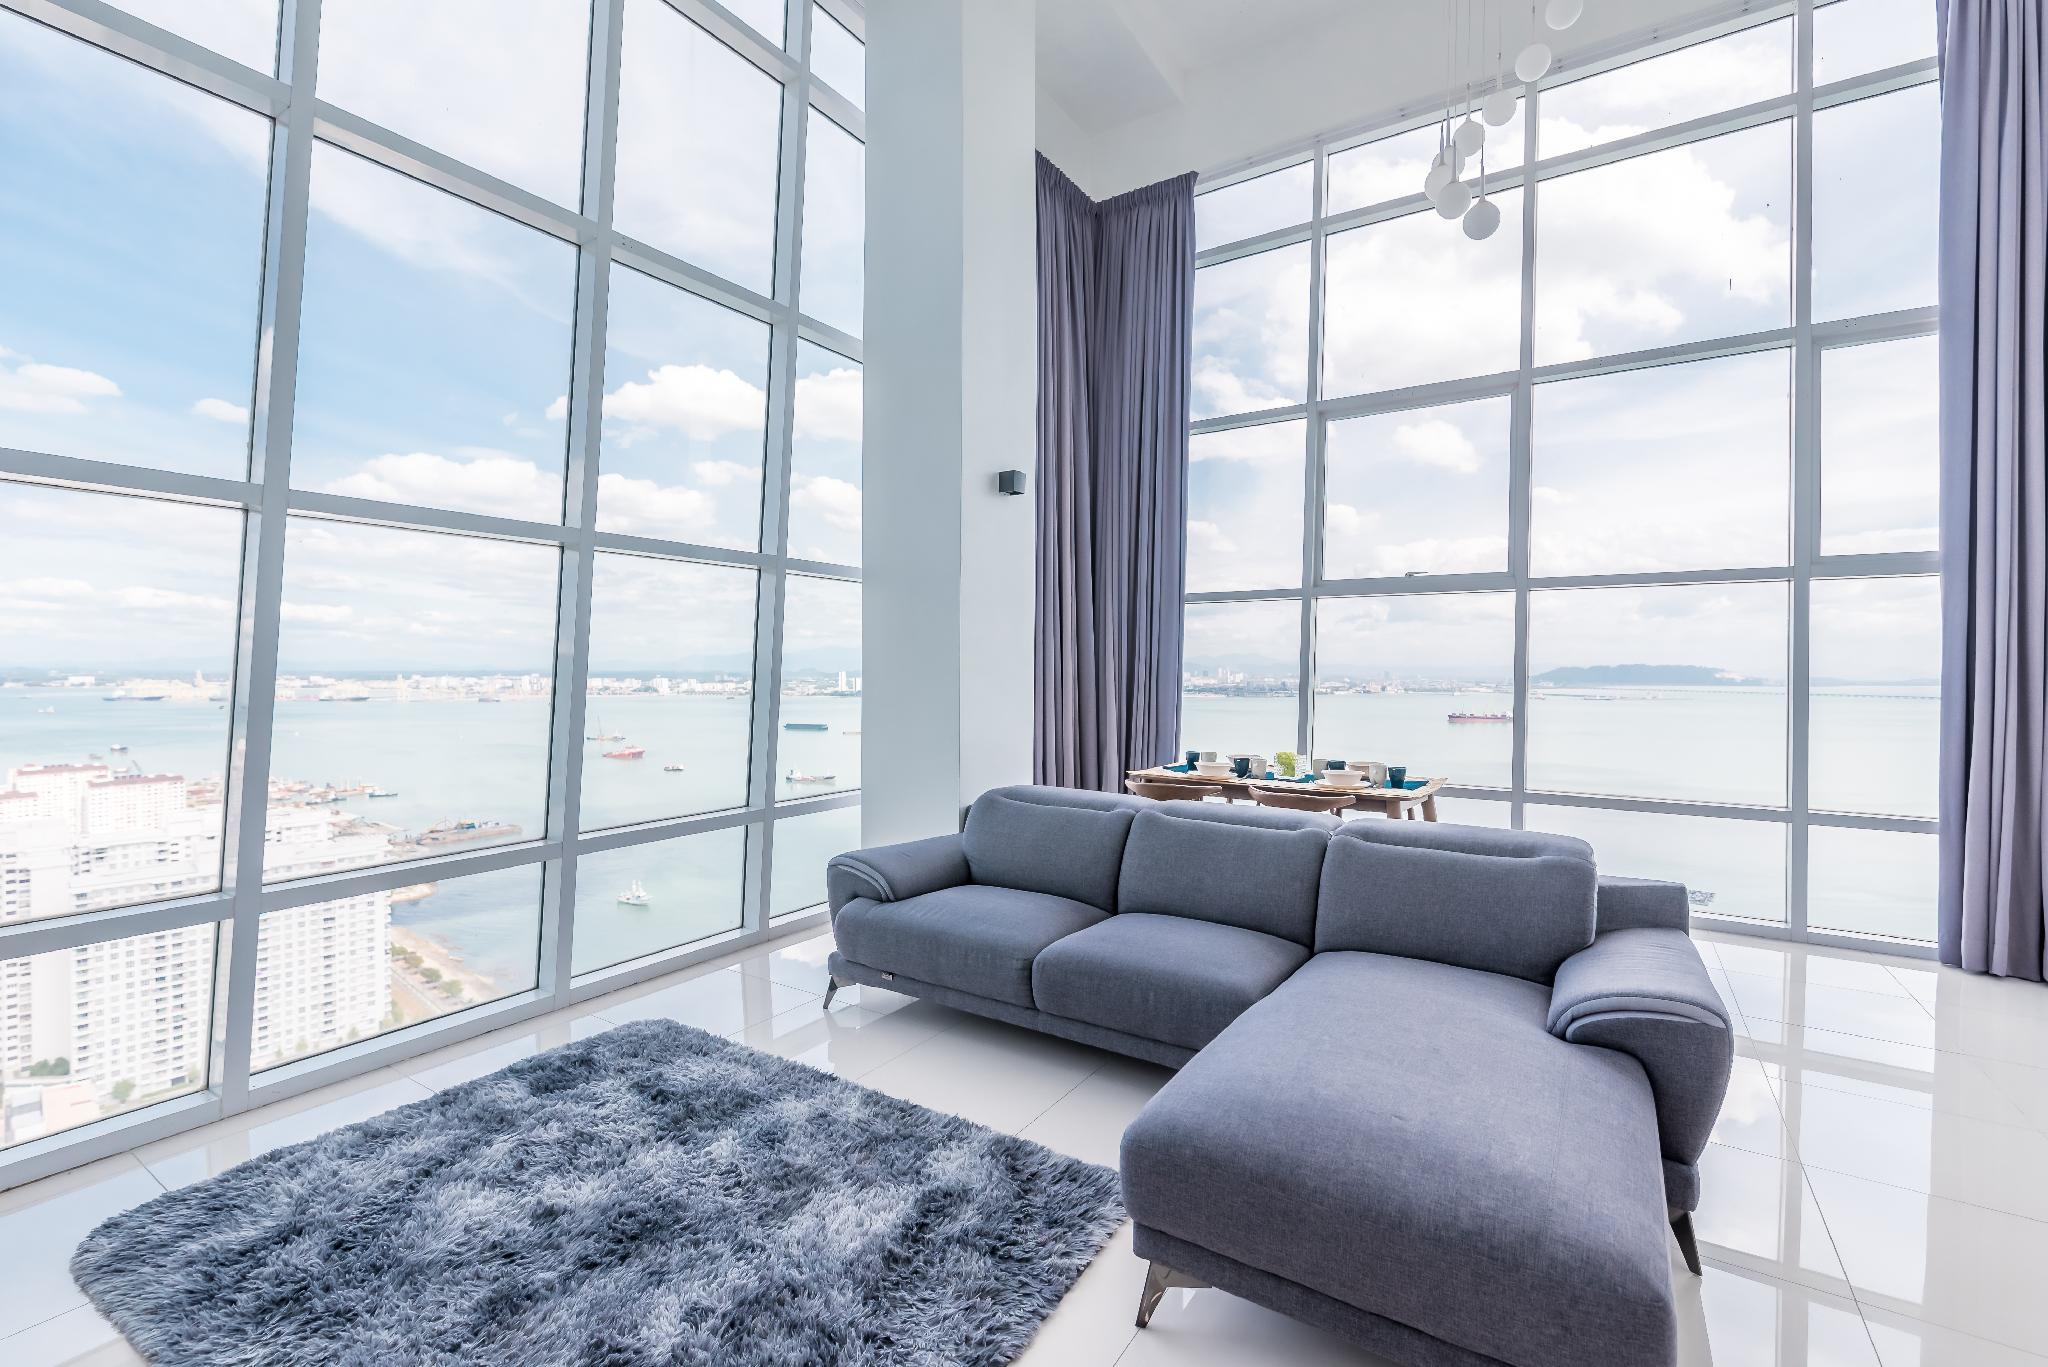 Maritime Luxury Penthouse Suite By The Sea